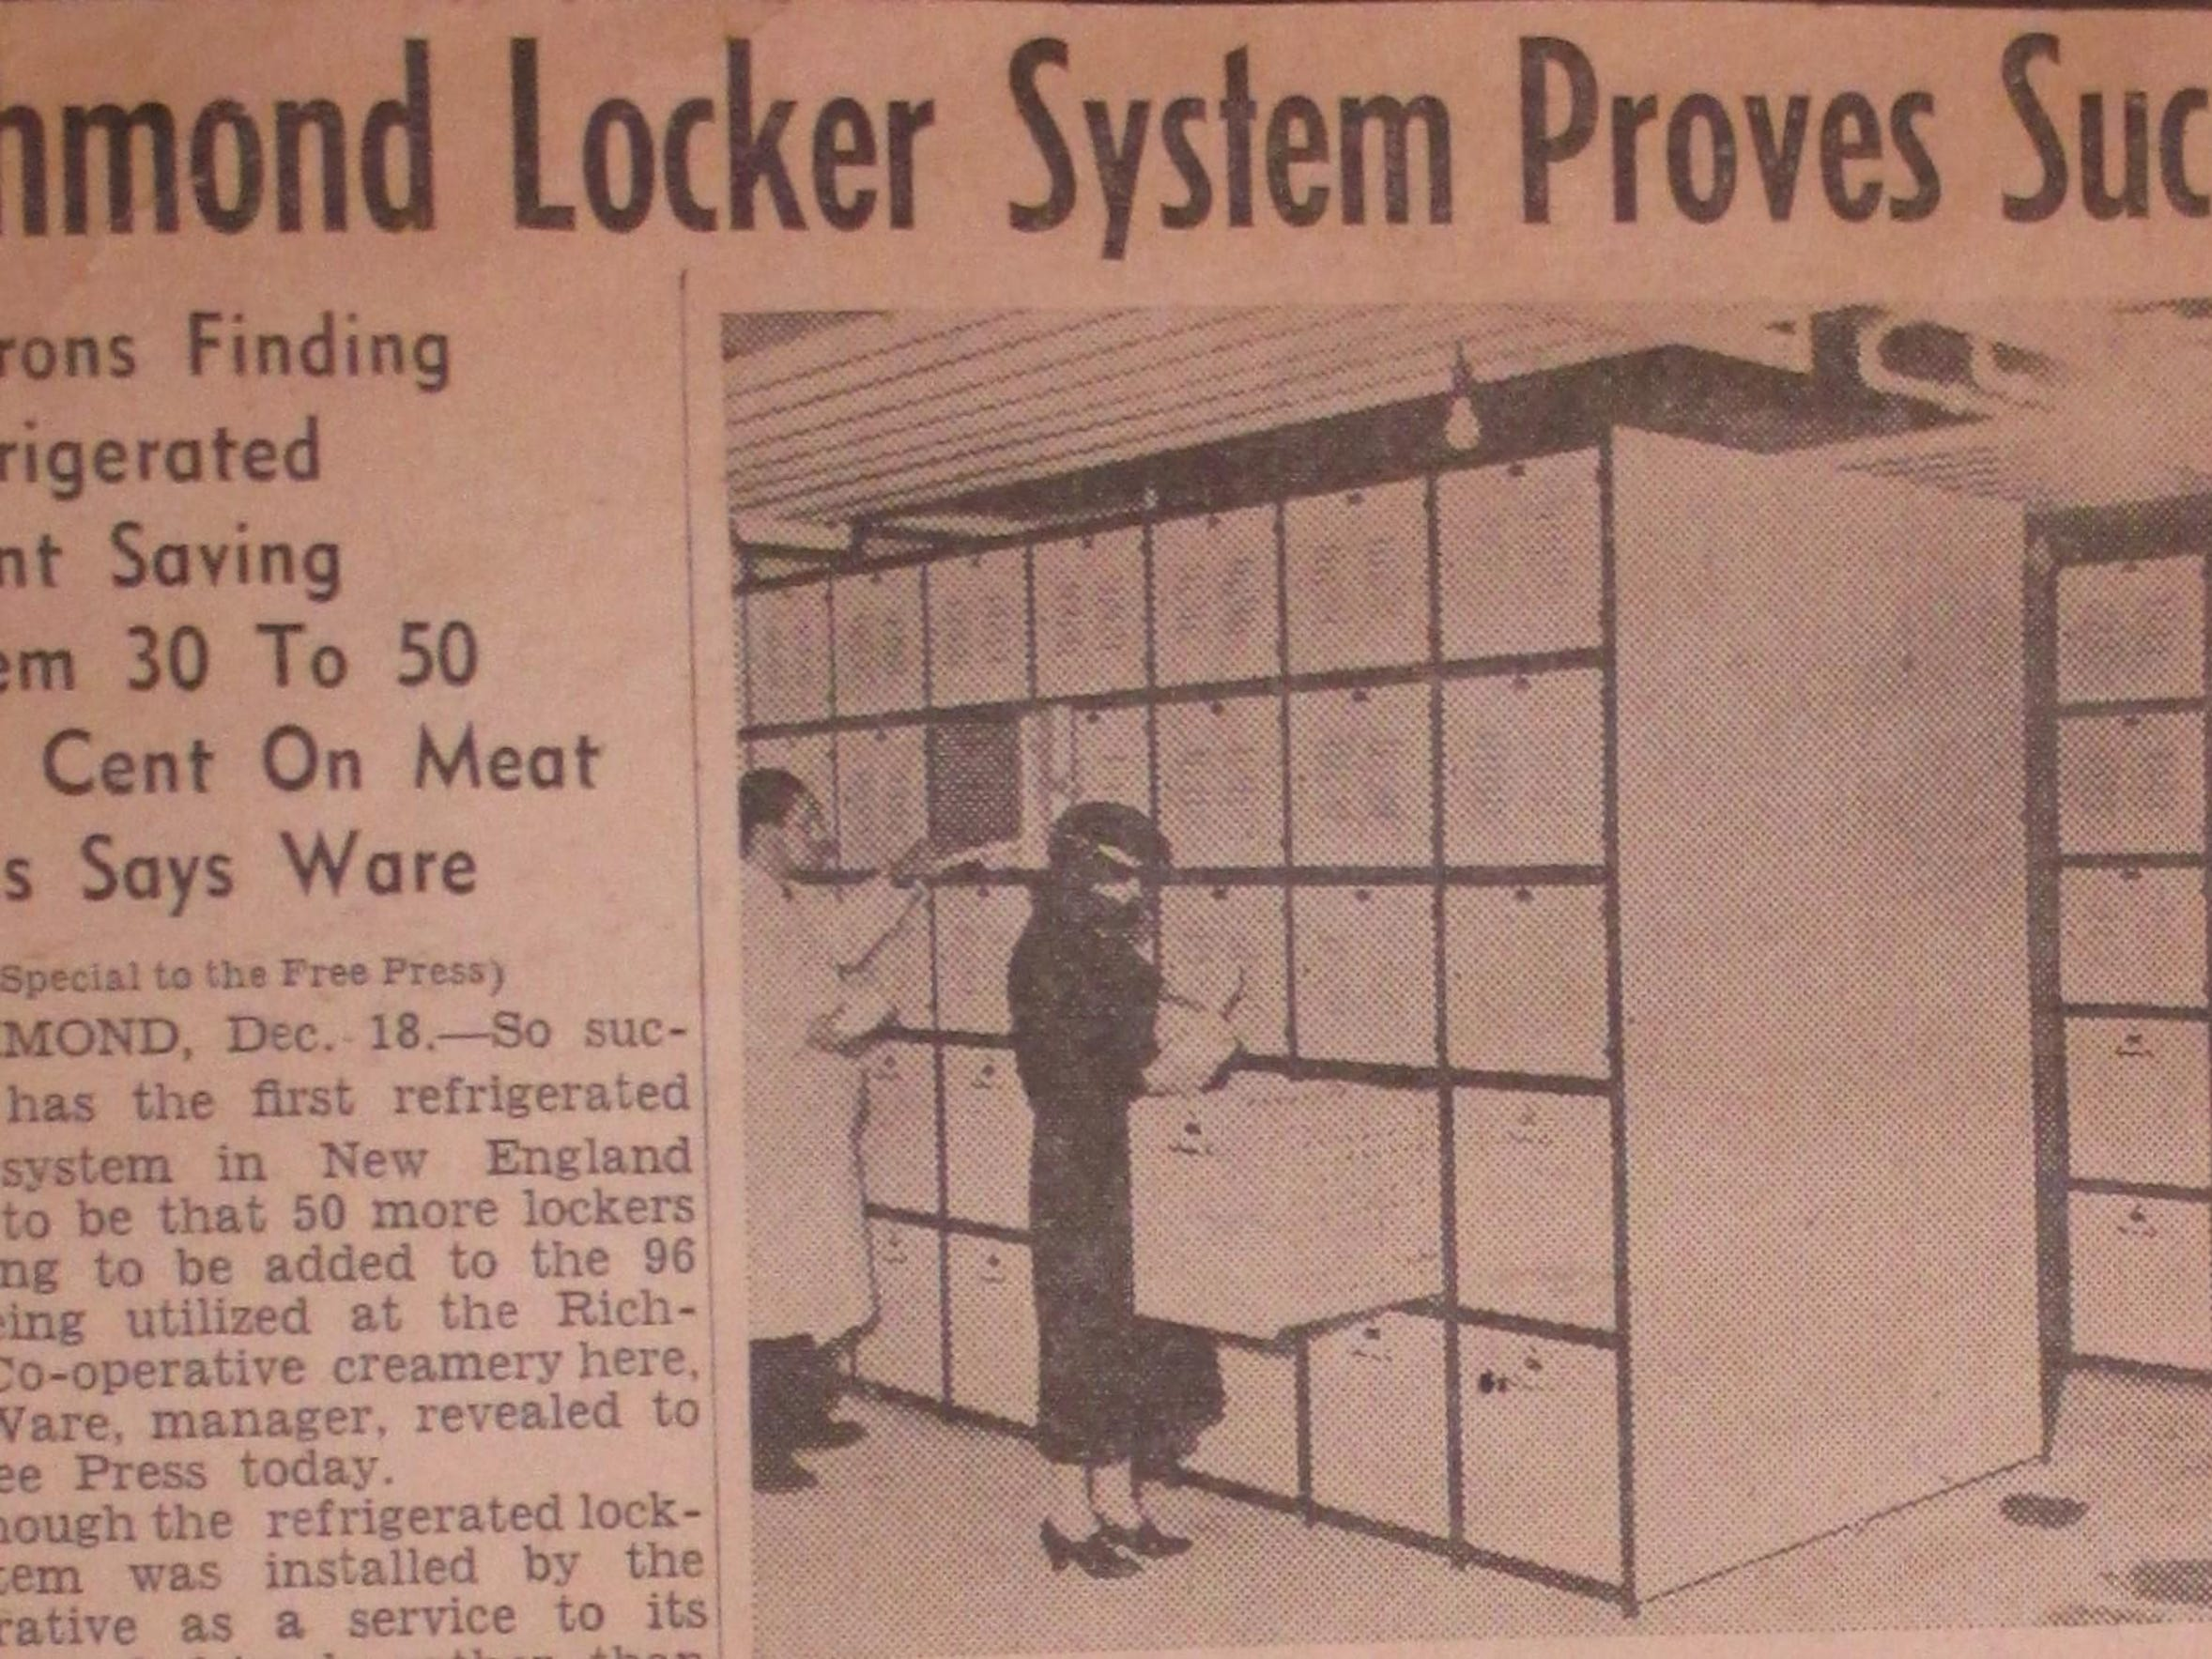 9. Refrigerated lockers